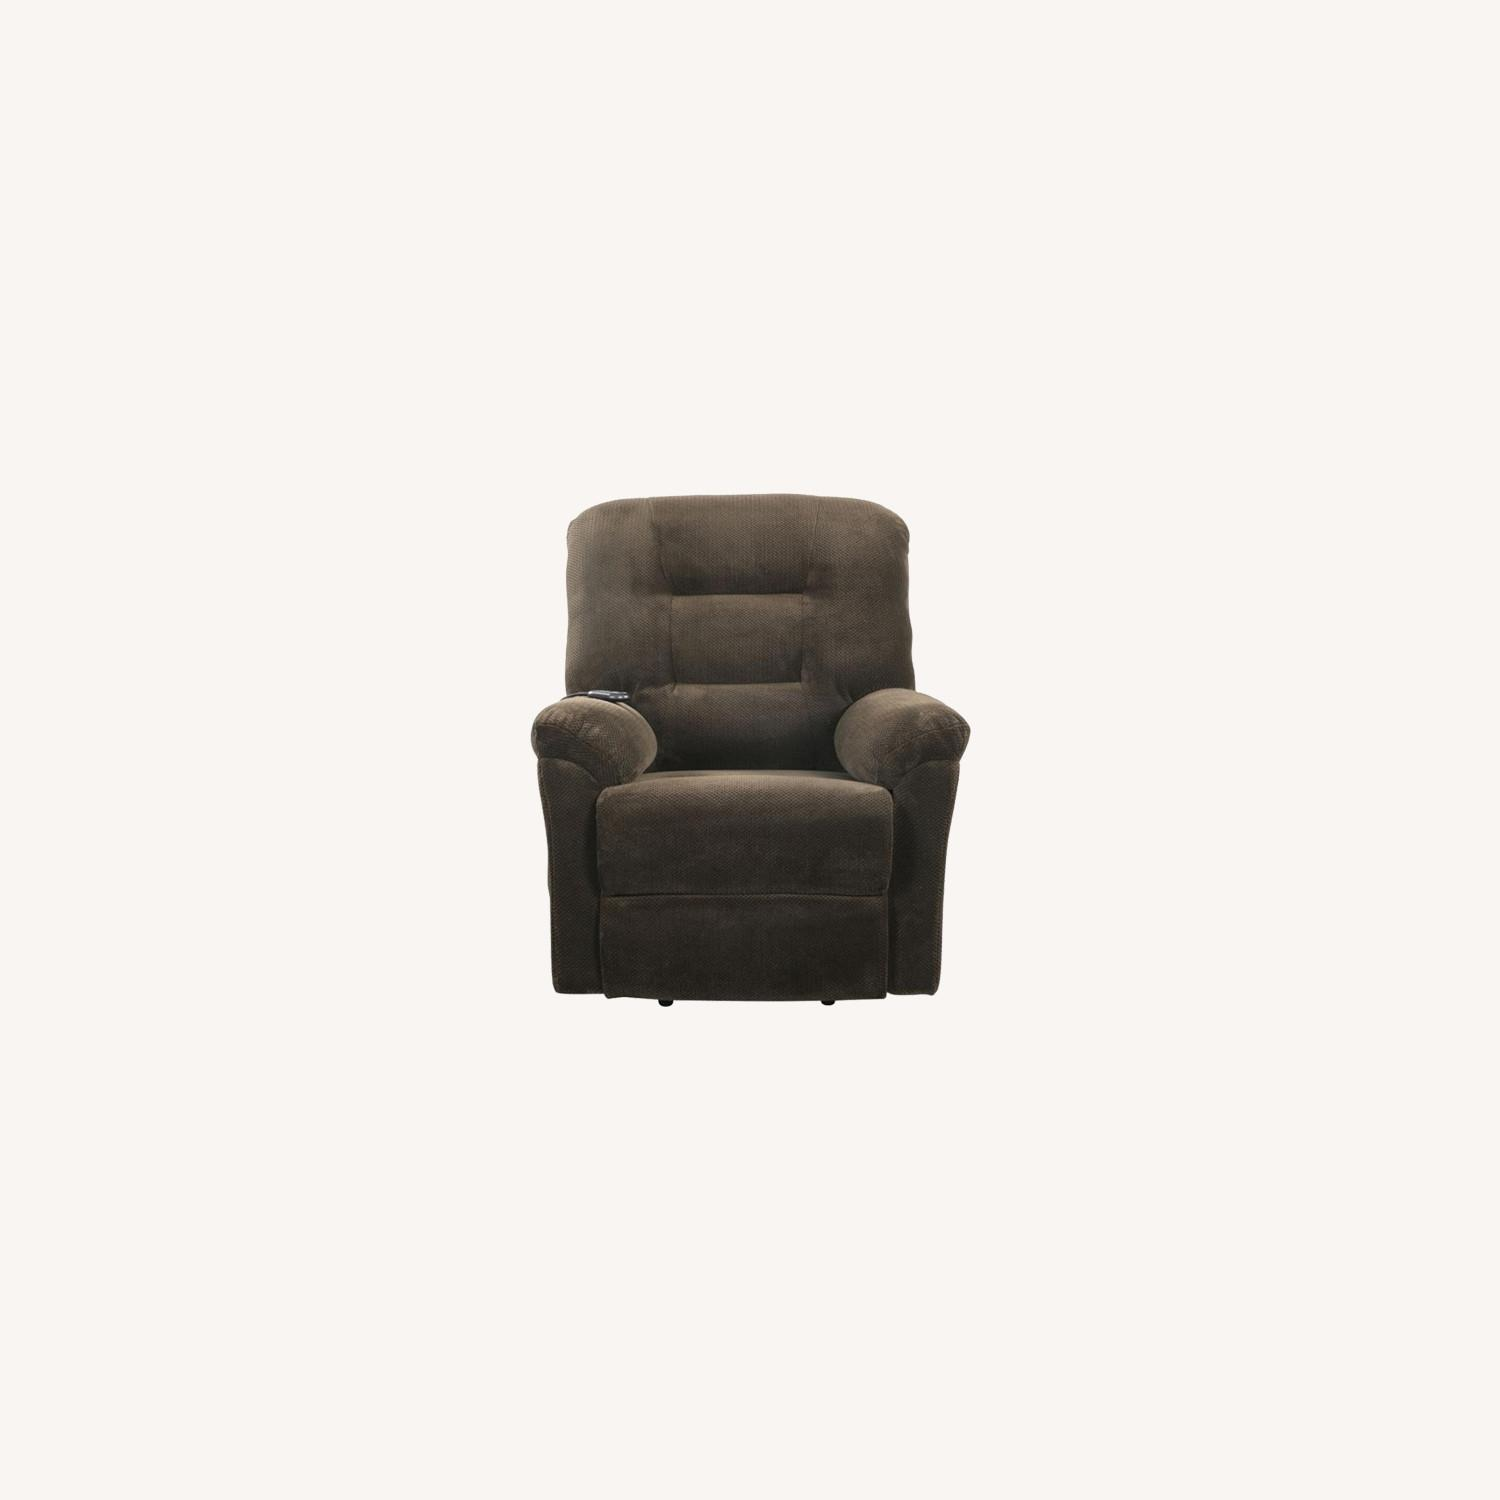 Power Lift Recliner In Chocolate Chenille Fabric - image-9